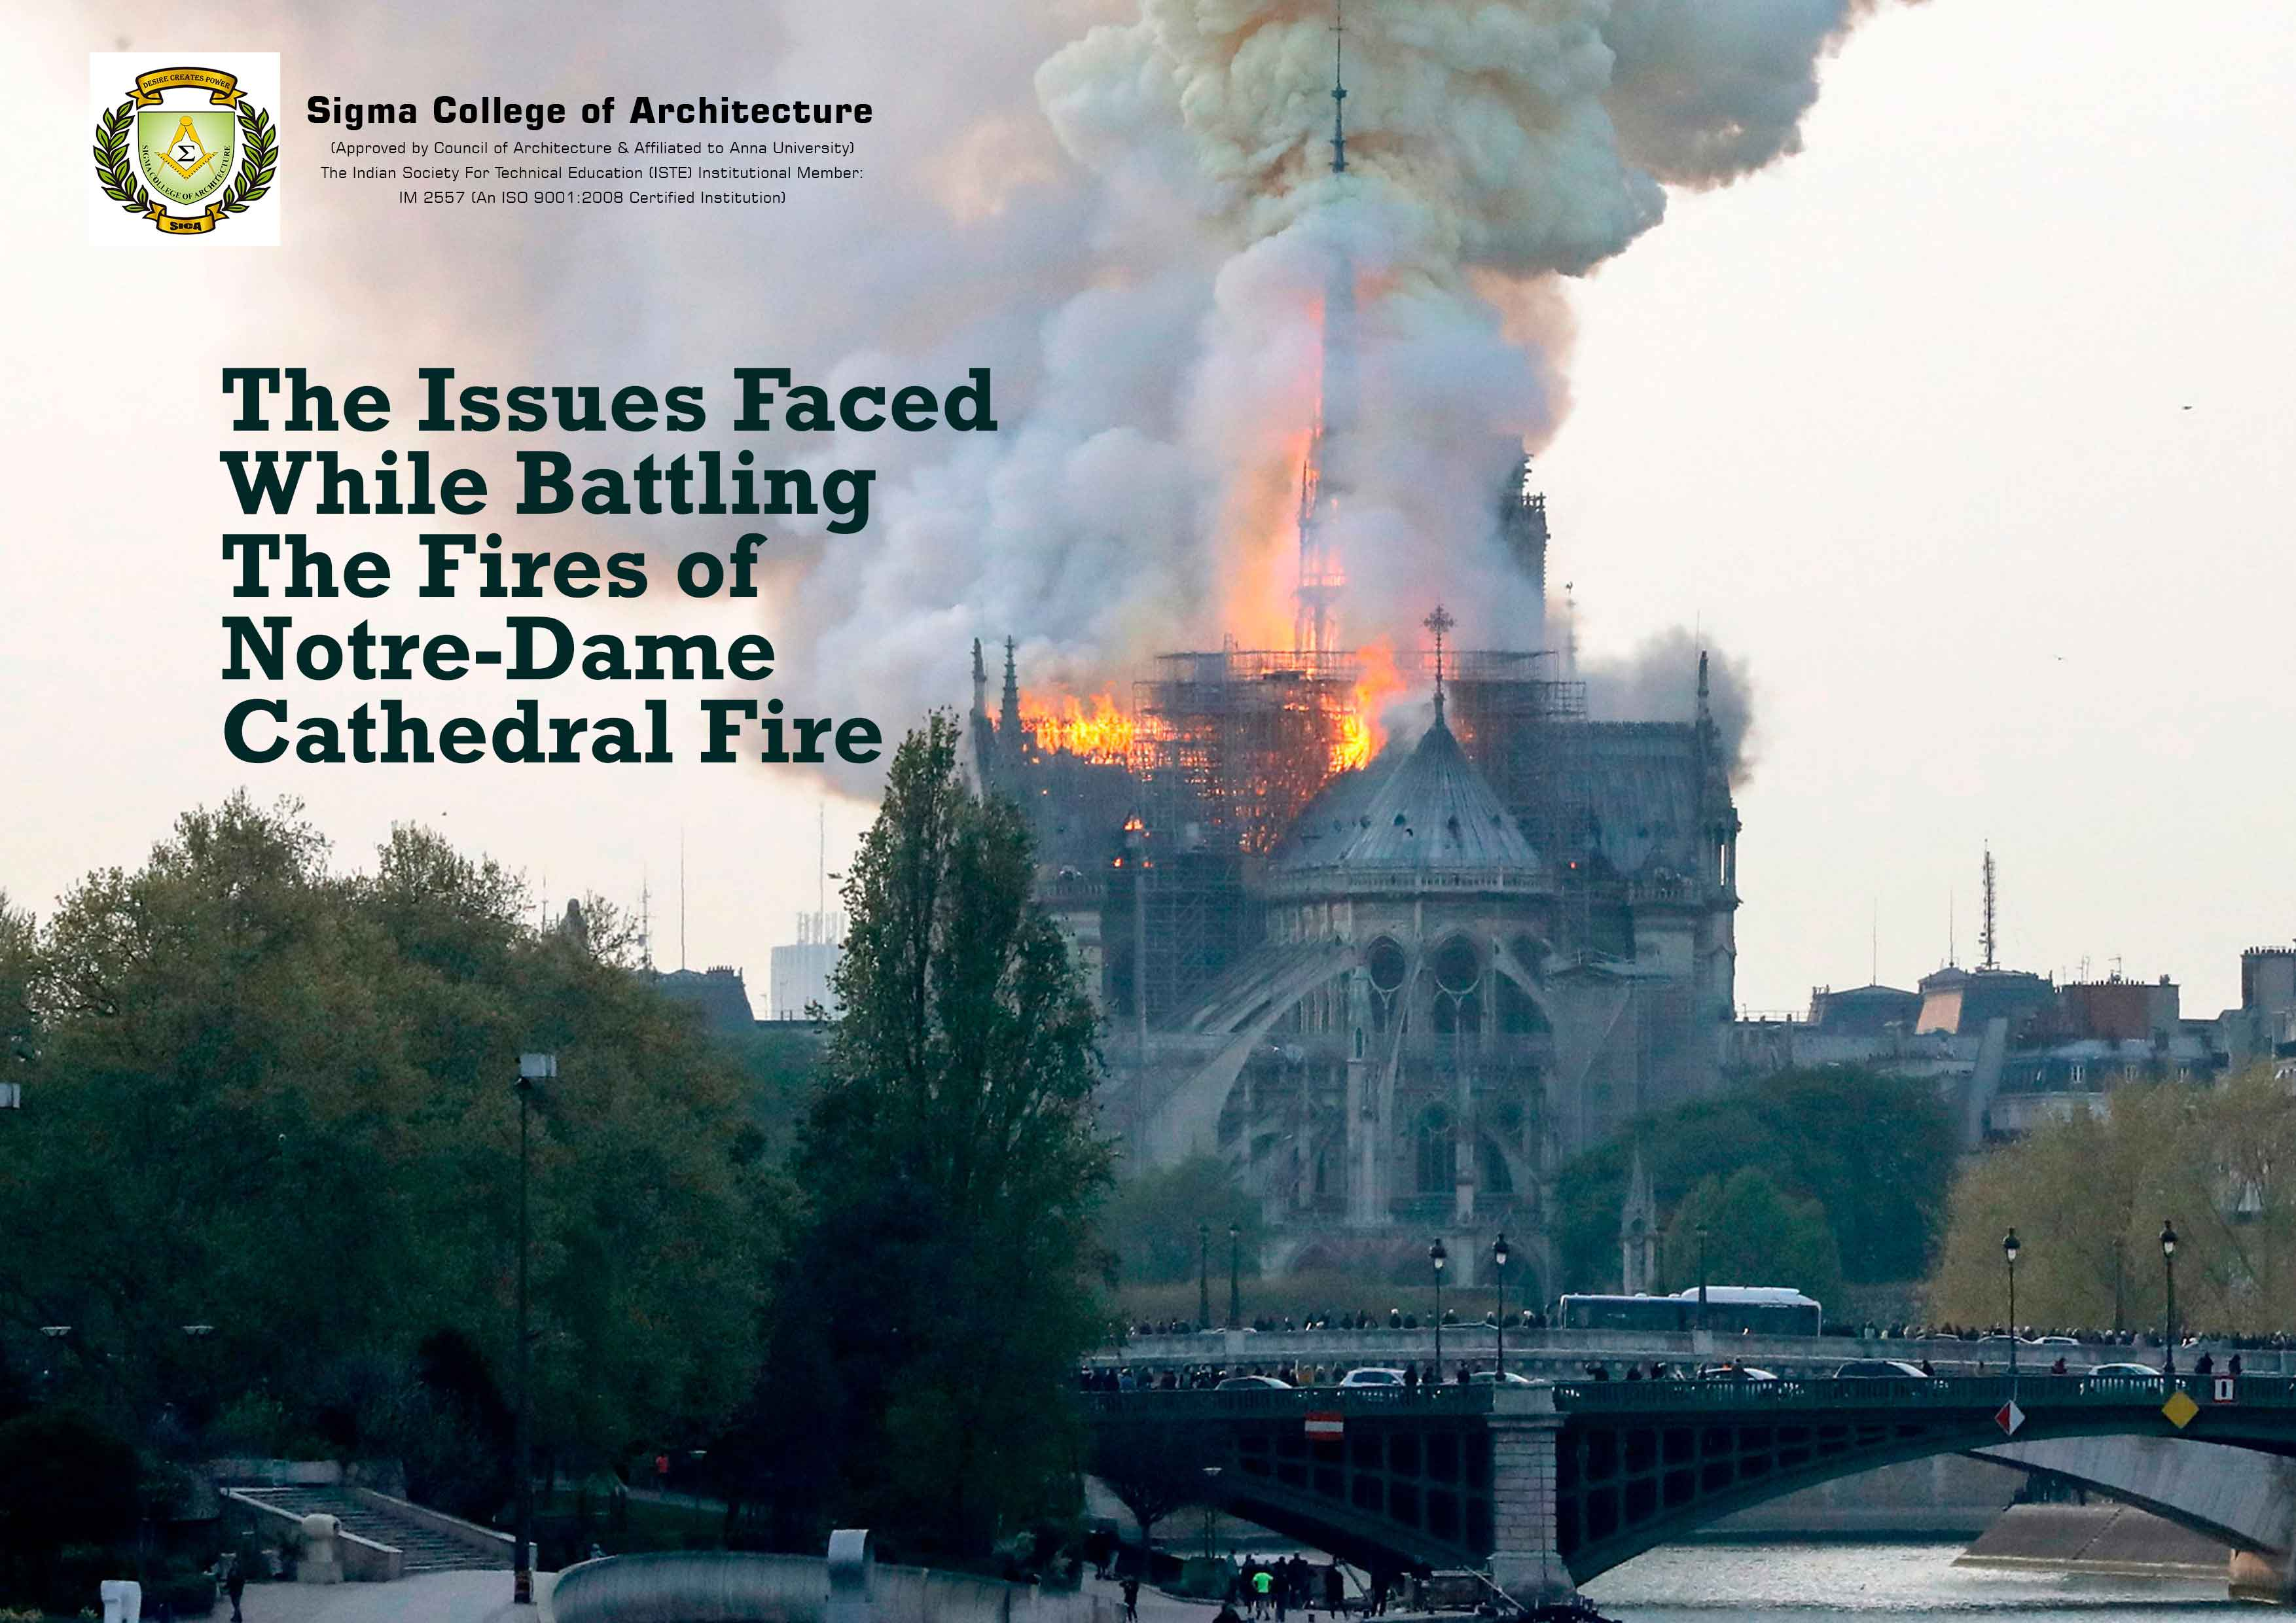 The Issues Faced While Battling The Fires of Notre-Dame Cathedral Fire